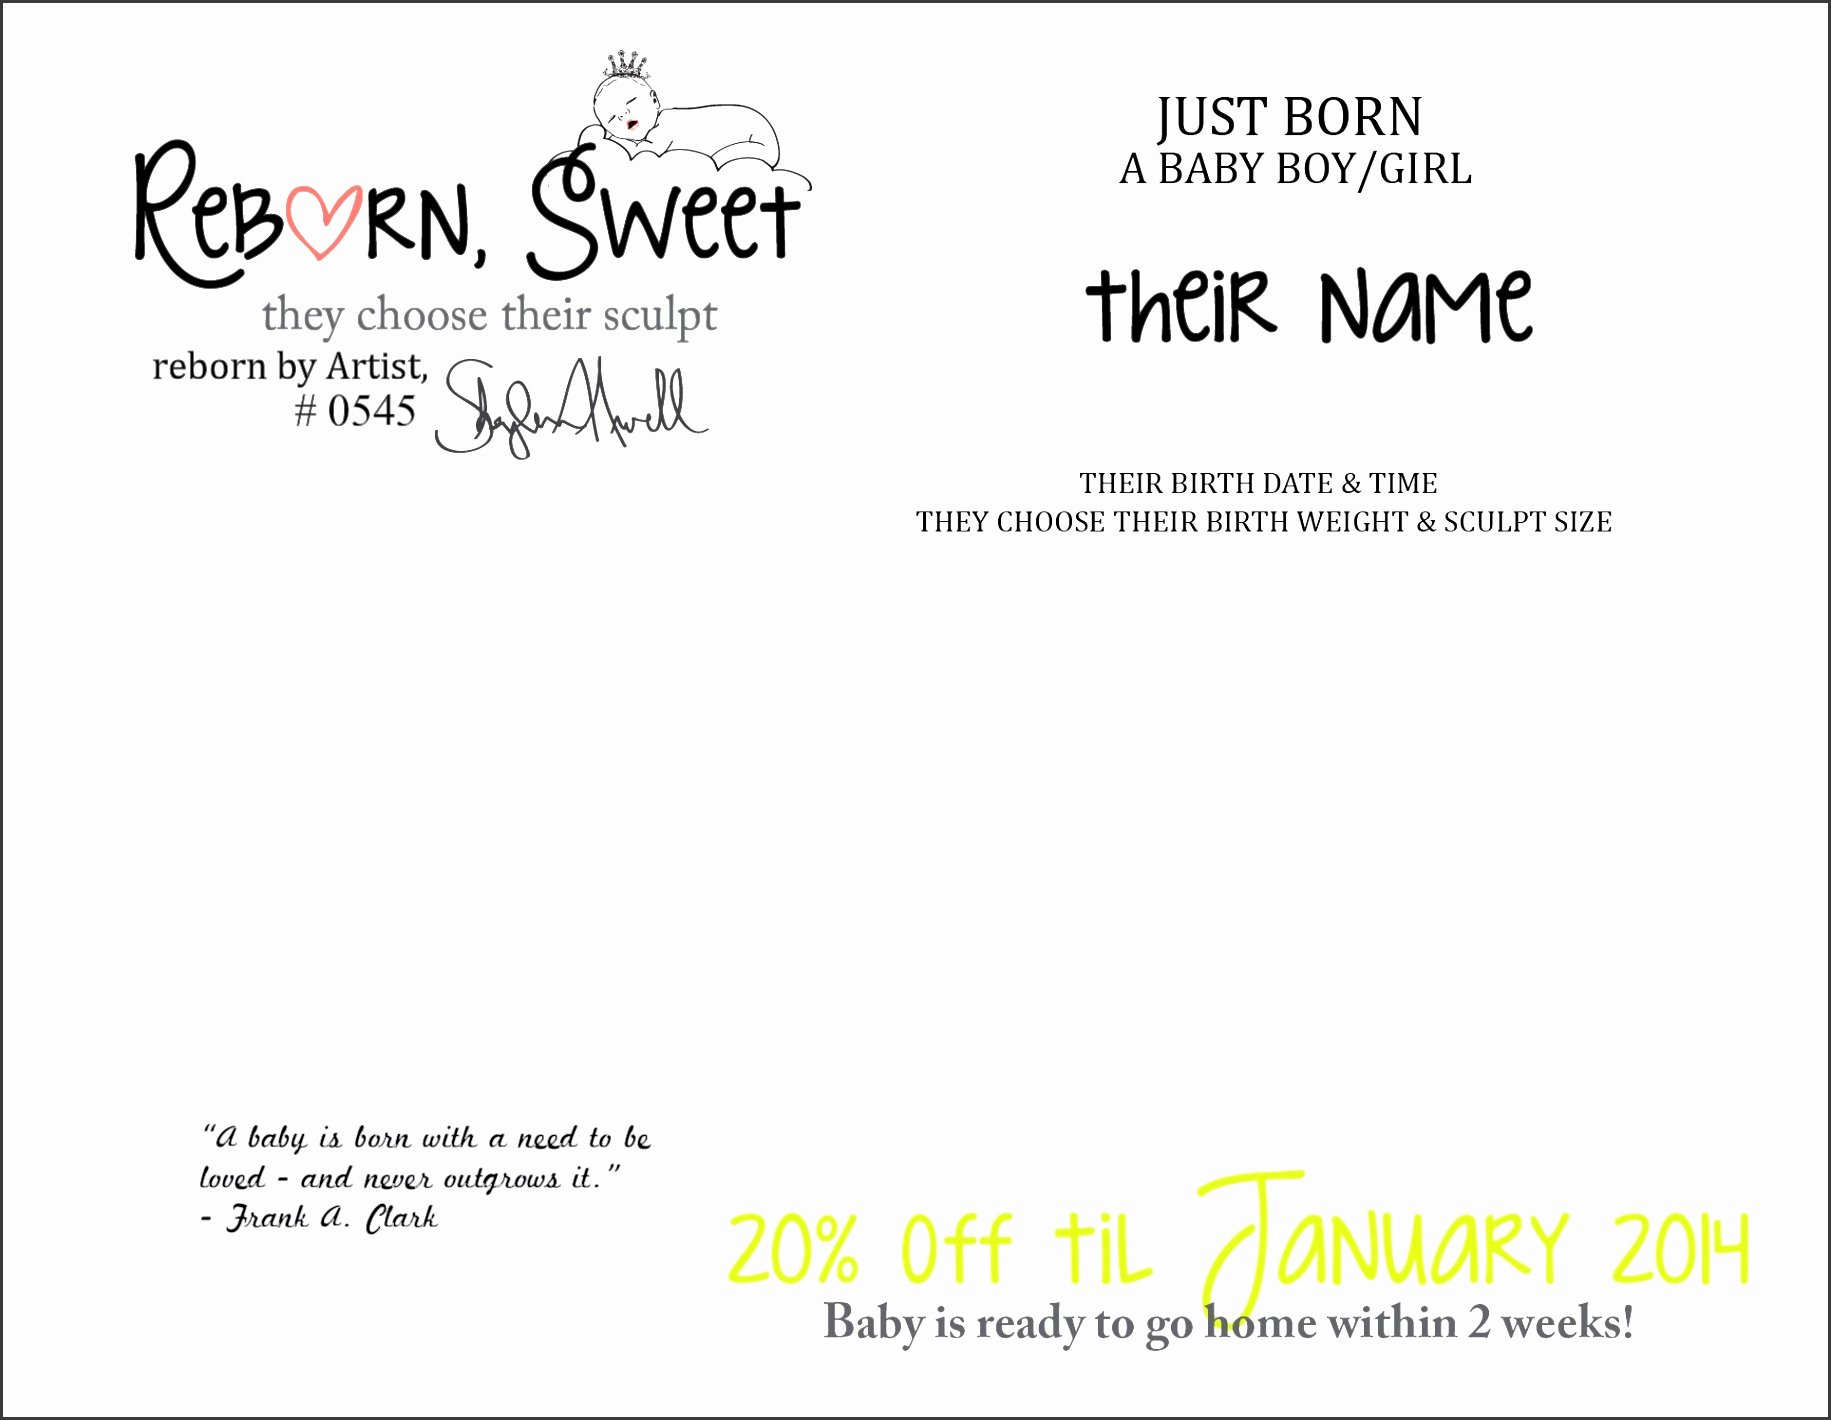 Baby Doll Birth Certificate Template Fresh 5 Baby Birth Certificate Template Sampletemplatess